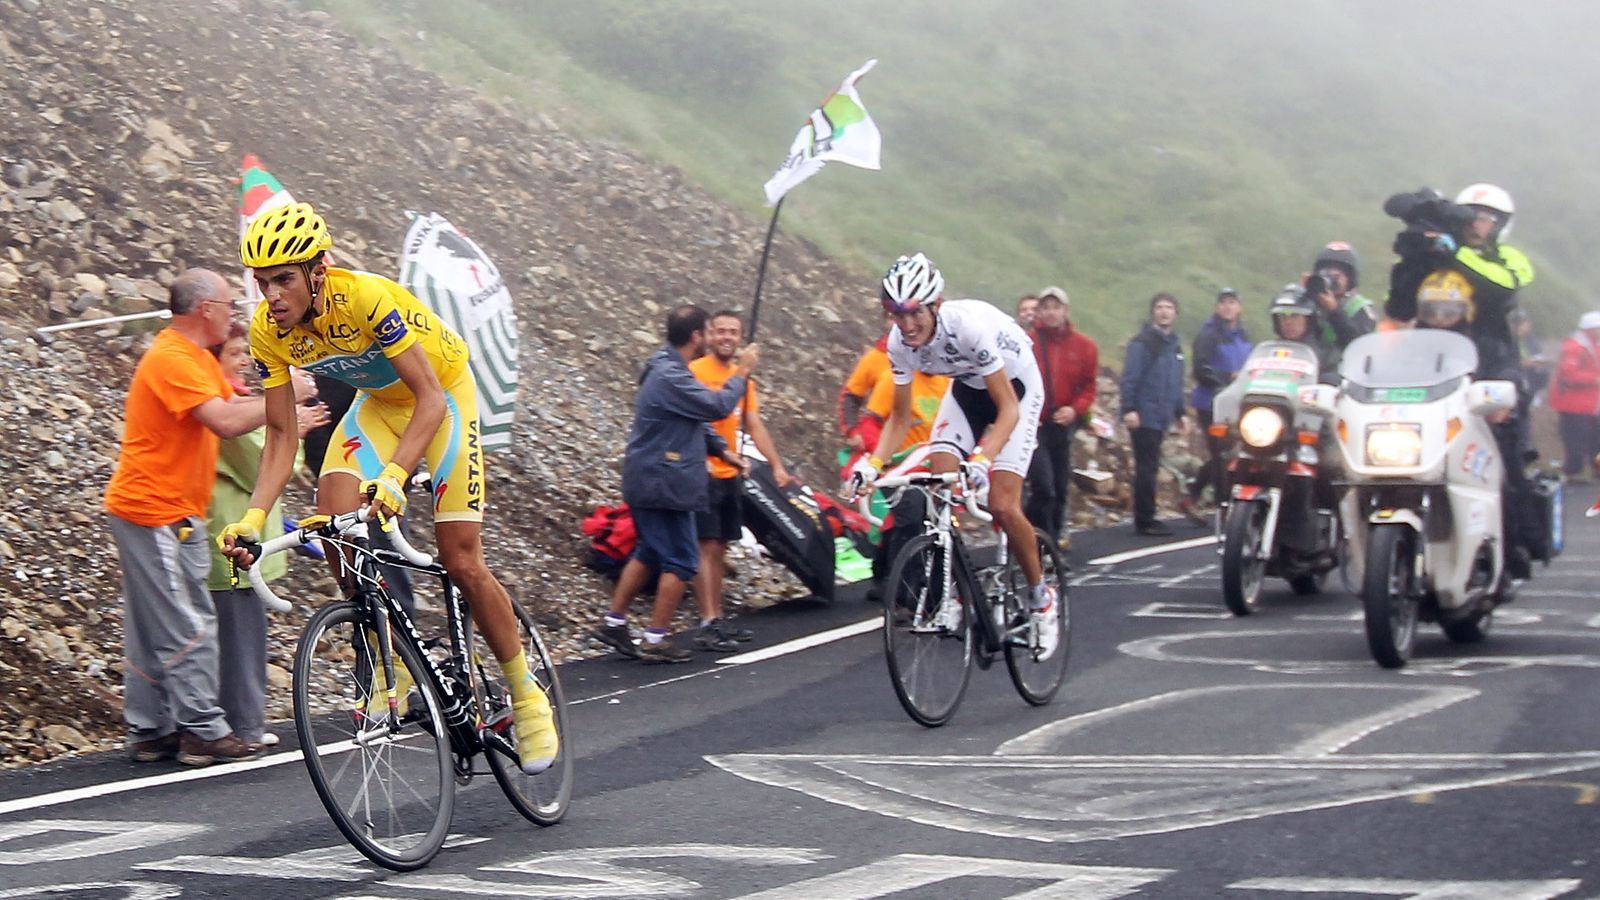 Tour de France 2016 preview: How to fully appreciate the world's greatest race